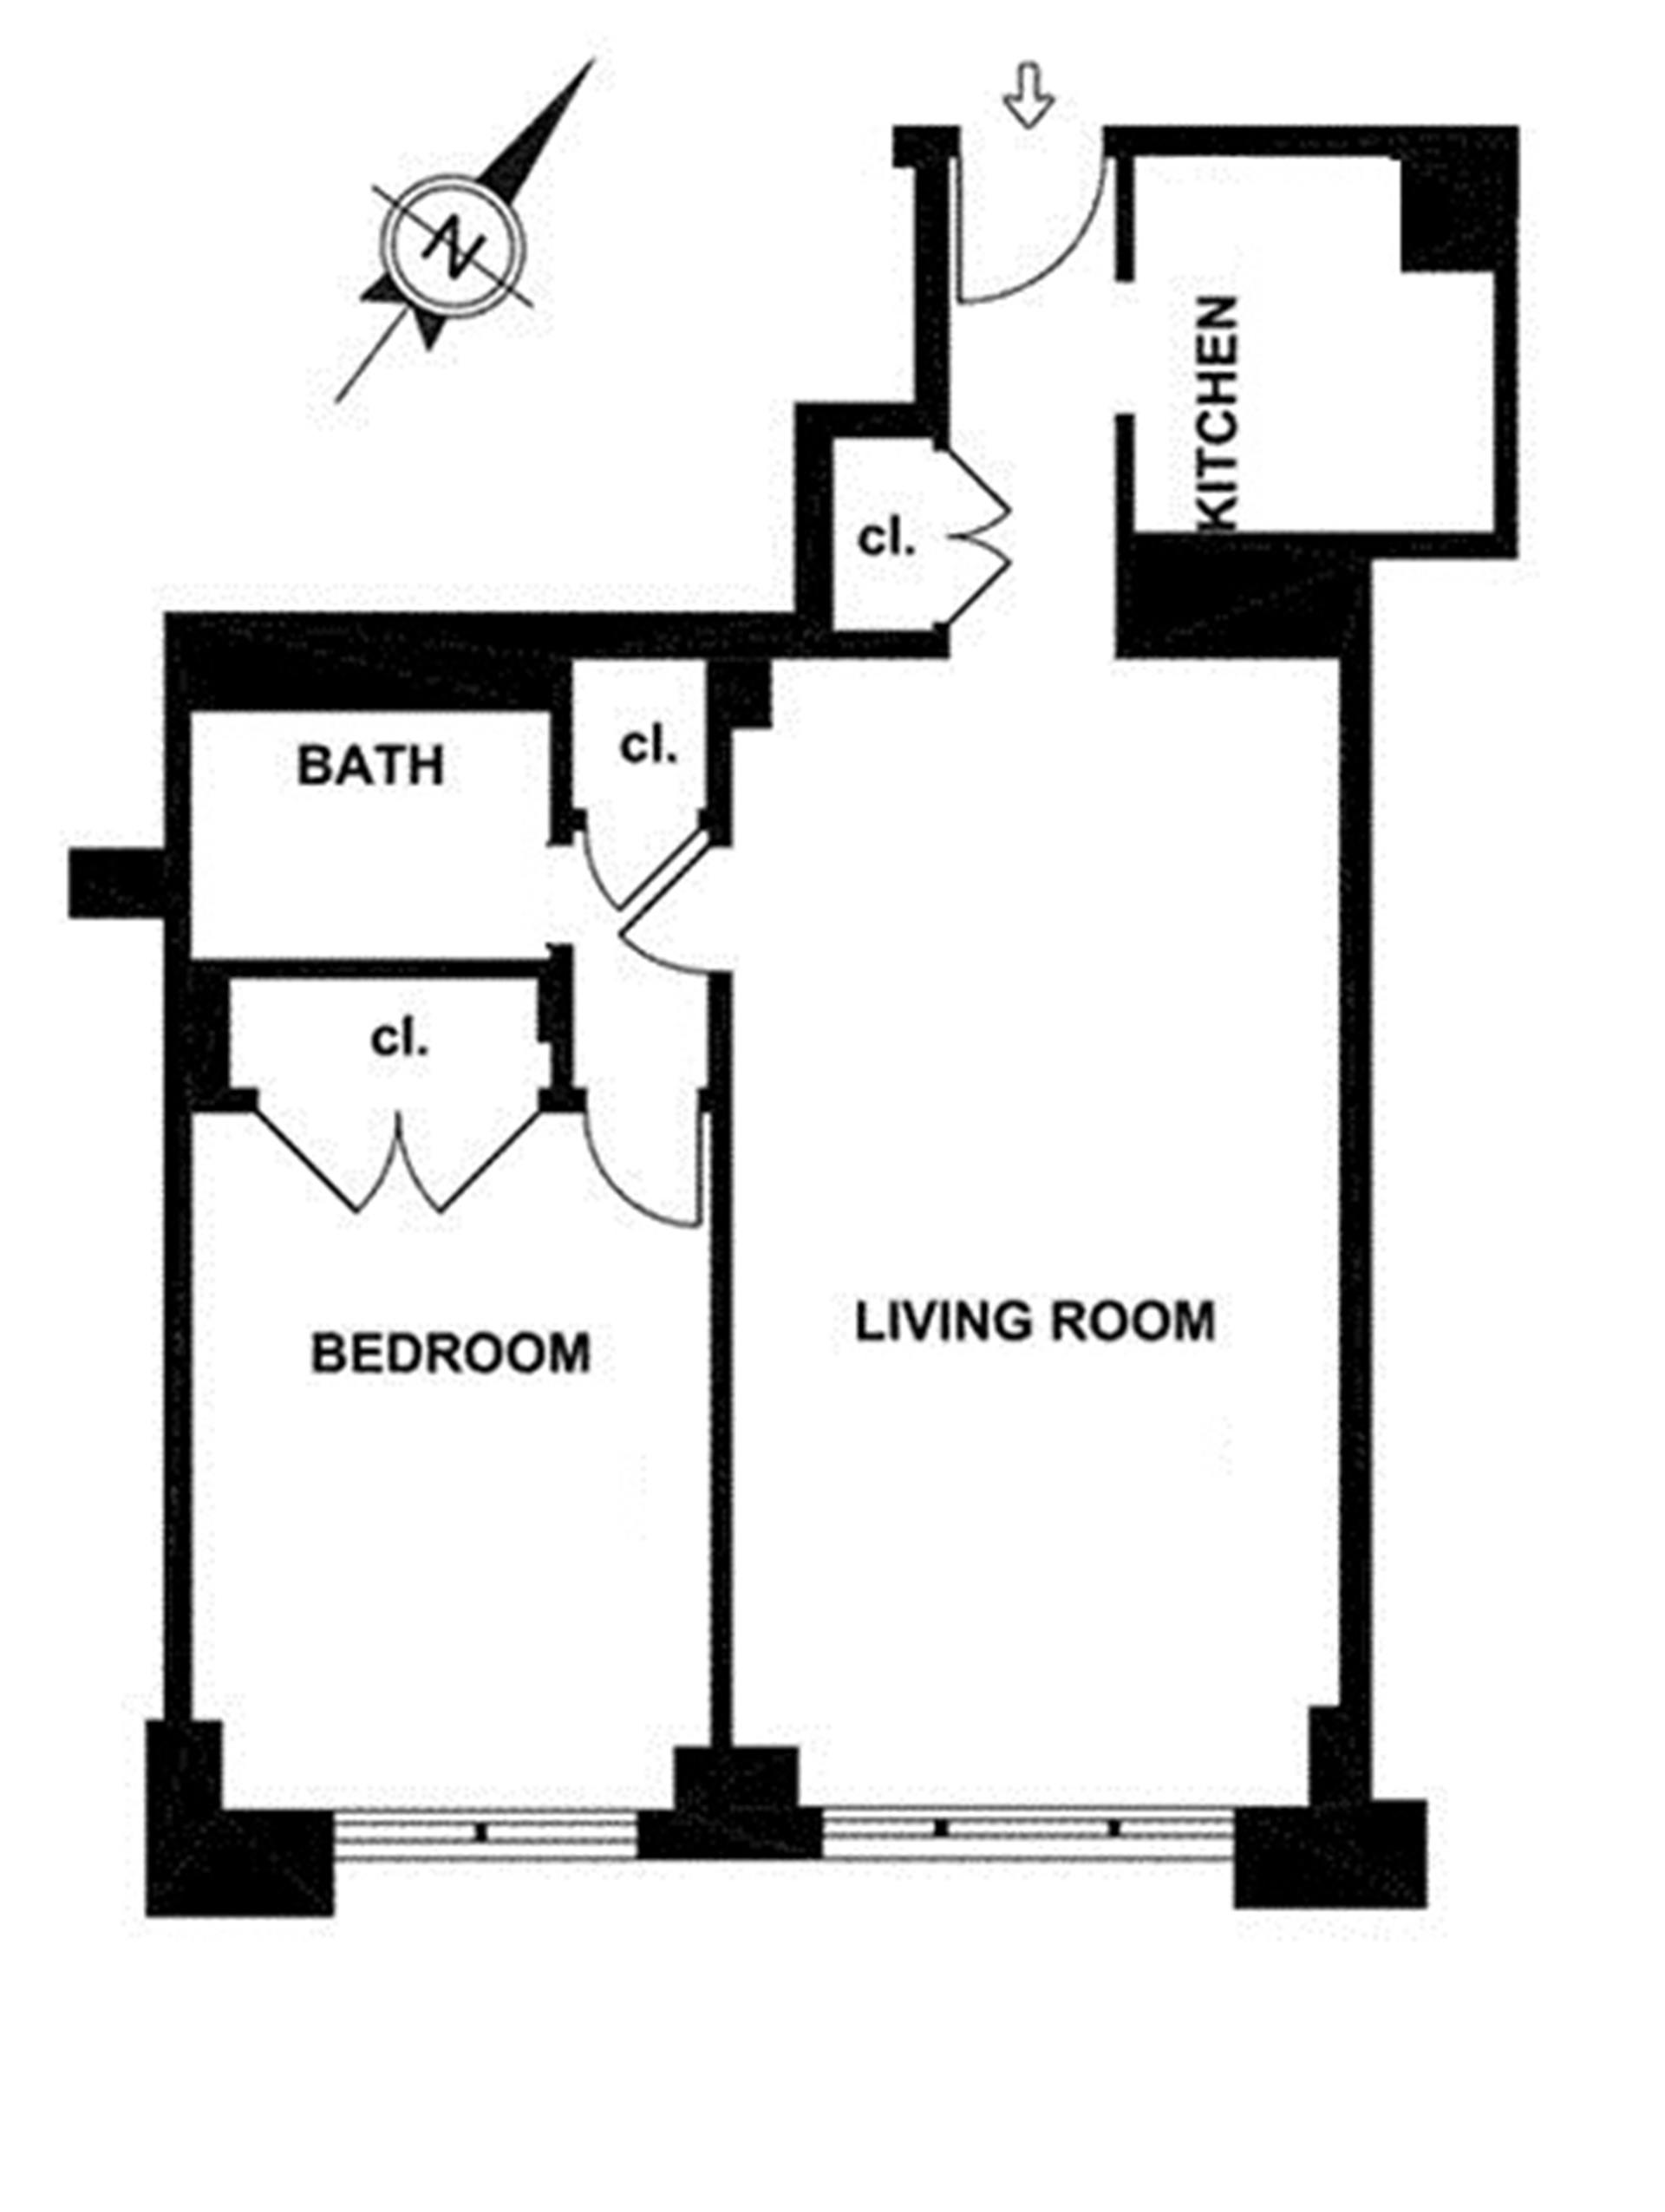 Floor plan of ONE LINCOLN PLAZA, 20 West 64th St, 39C - Lincoln Square, New York